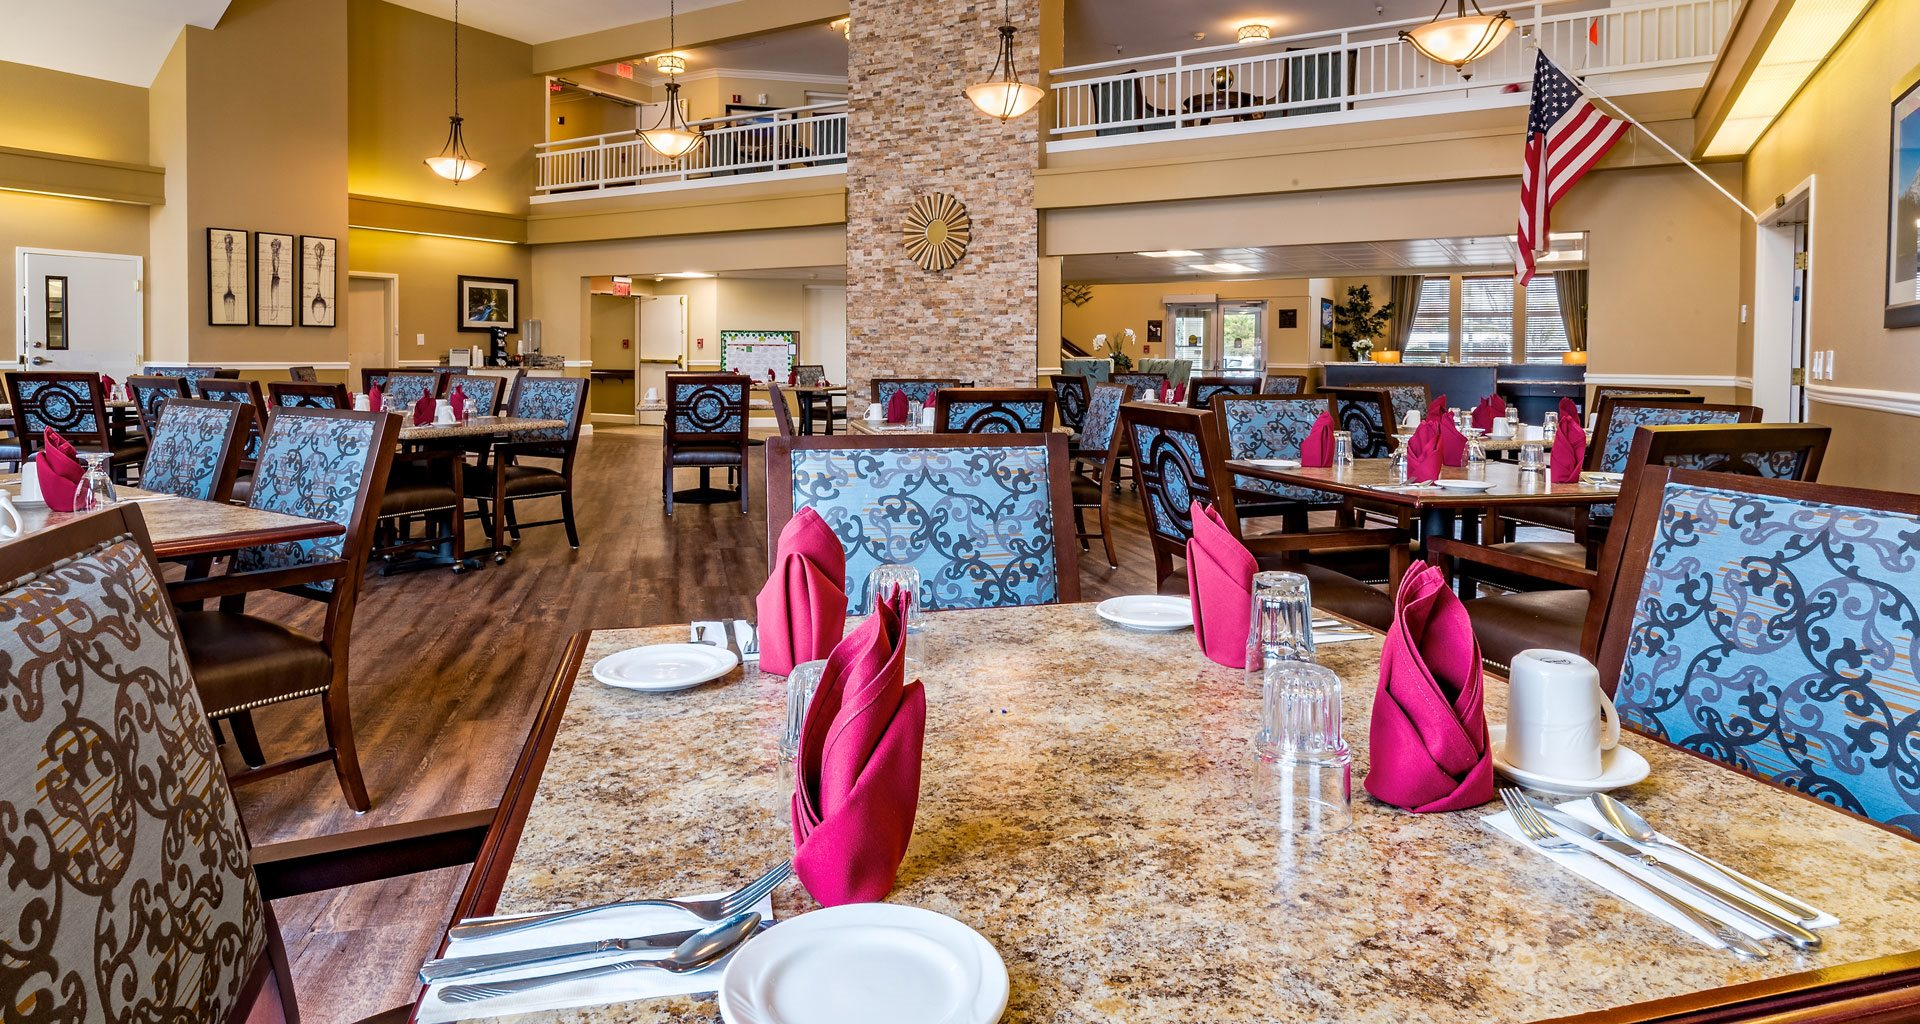 Eat-In Table With High Chairs In Clubhouse at Pacifica Senior Living Klamath Falls, Klamath Falls, OR, 97601